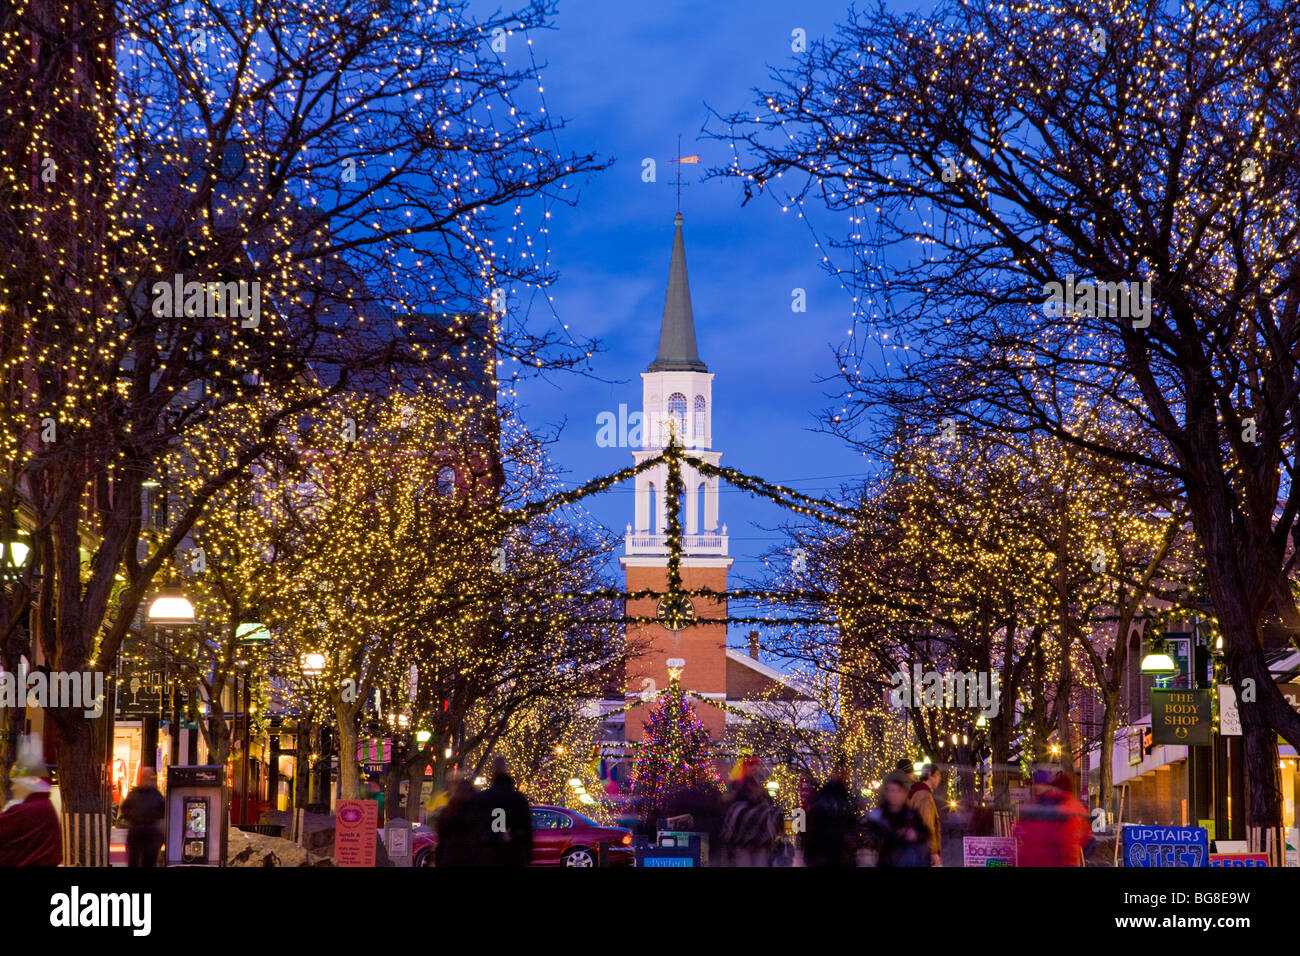 Christmas Decorations In Vermont : Christmas lights on church street pedestrian mall business